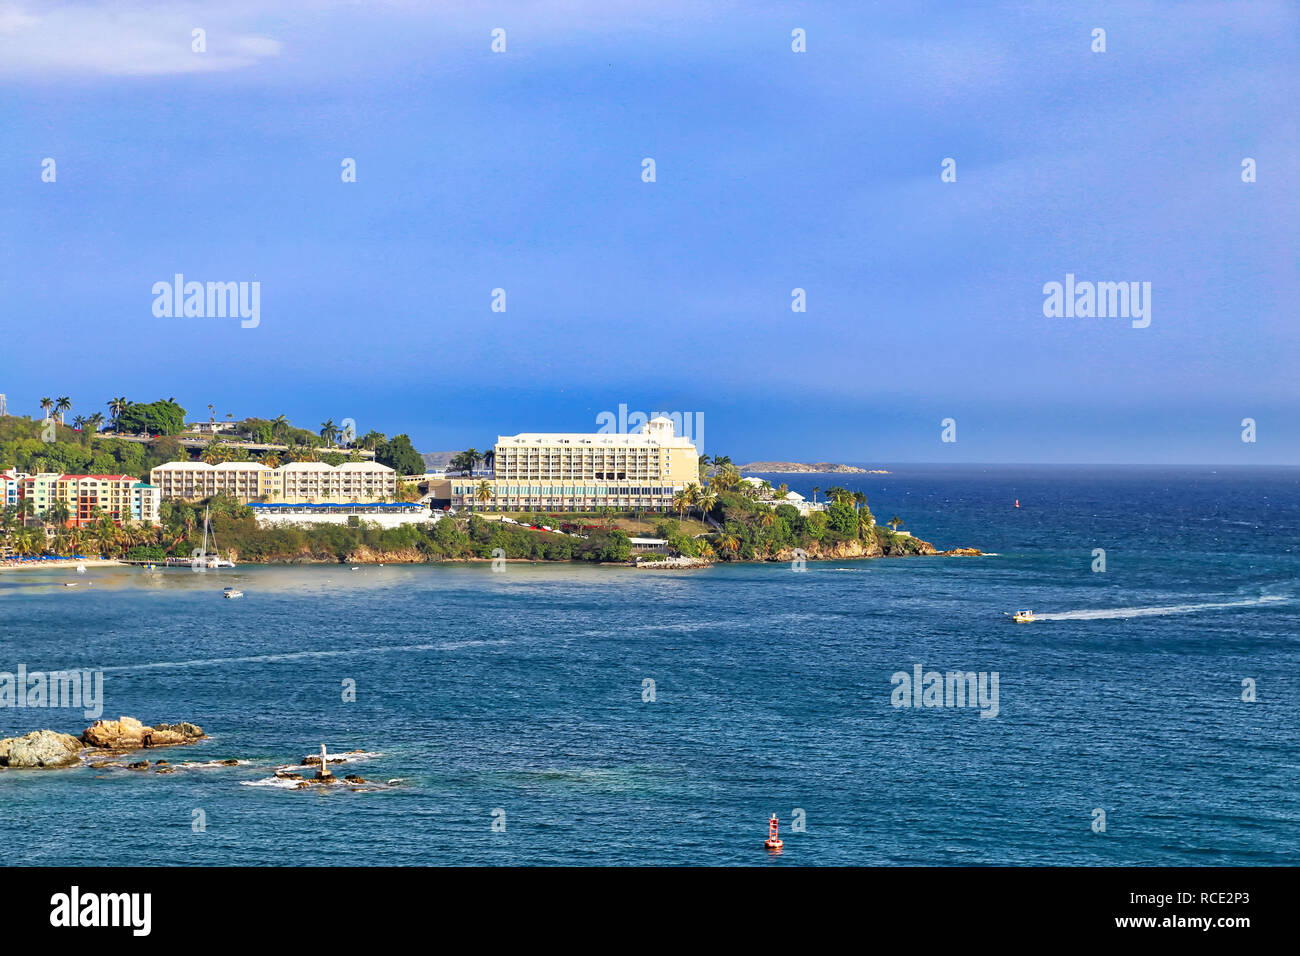 Saint Thomas Island and Charlotte Amalie bay panoramic view – a popular destination for Caribbean cruises and vacations Stock Photo